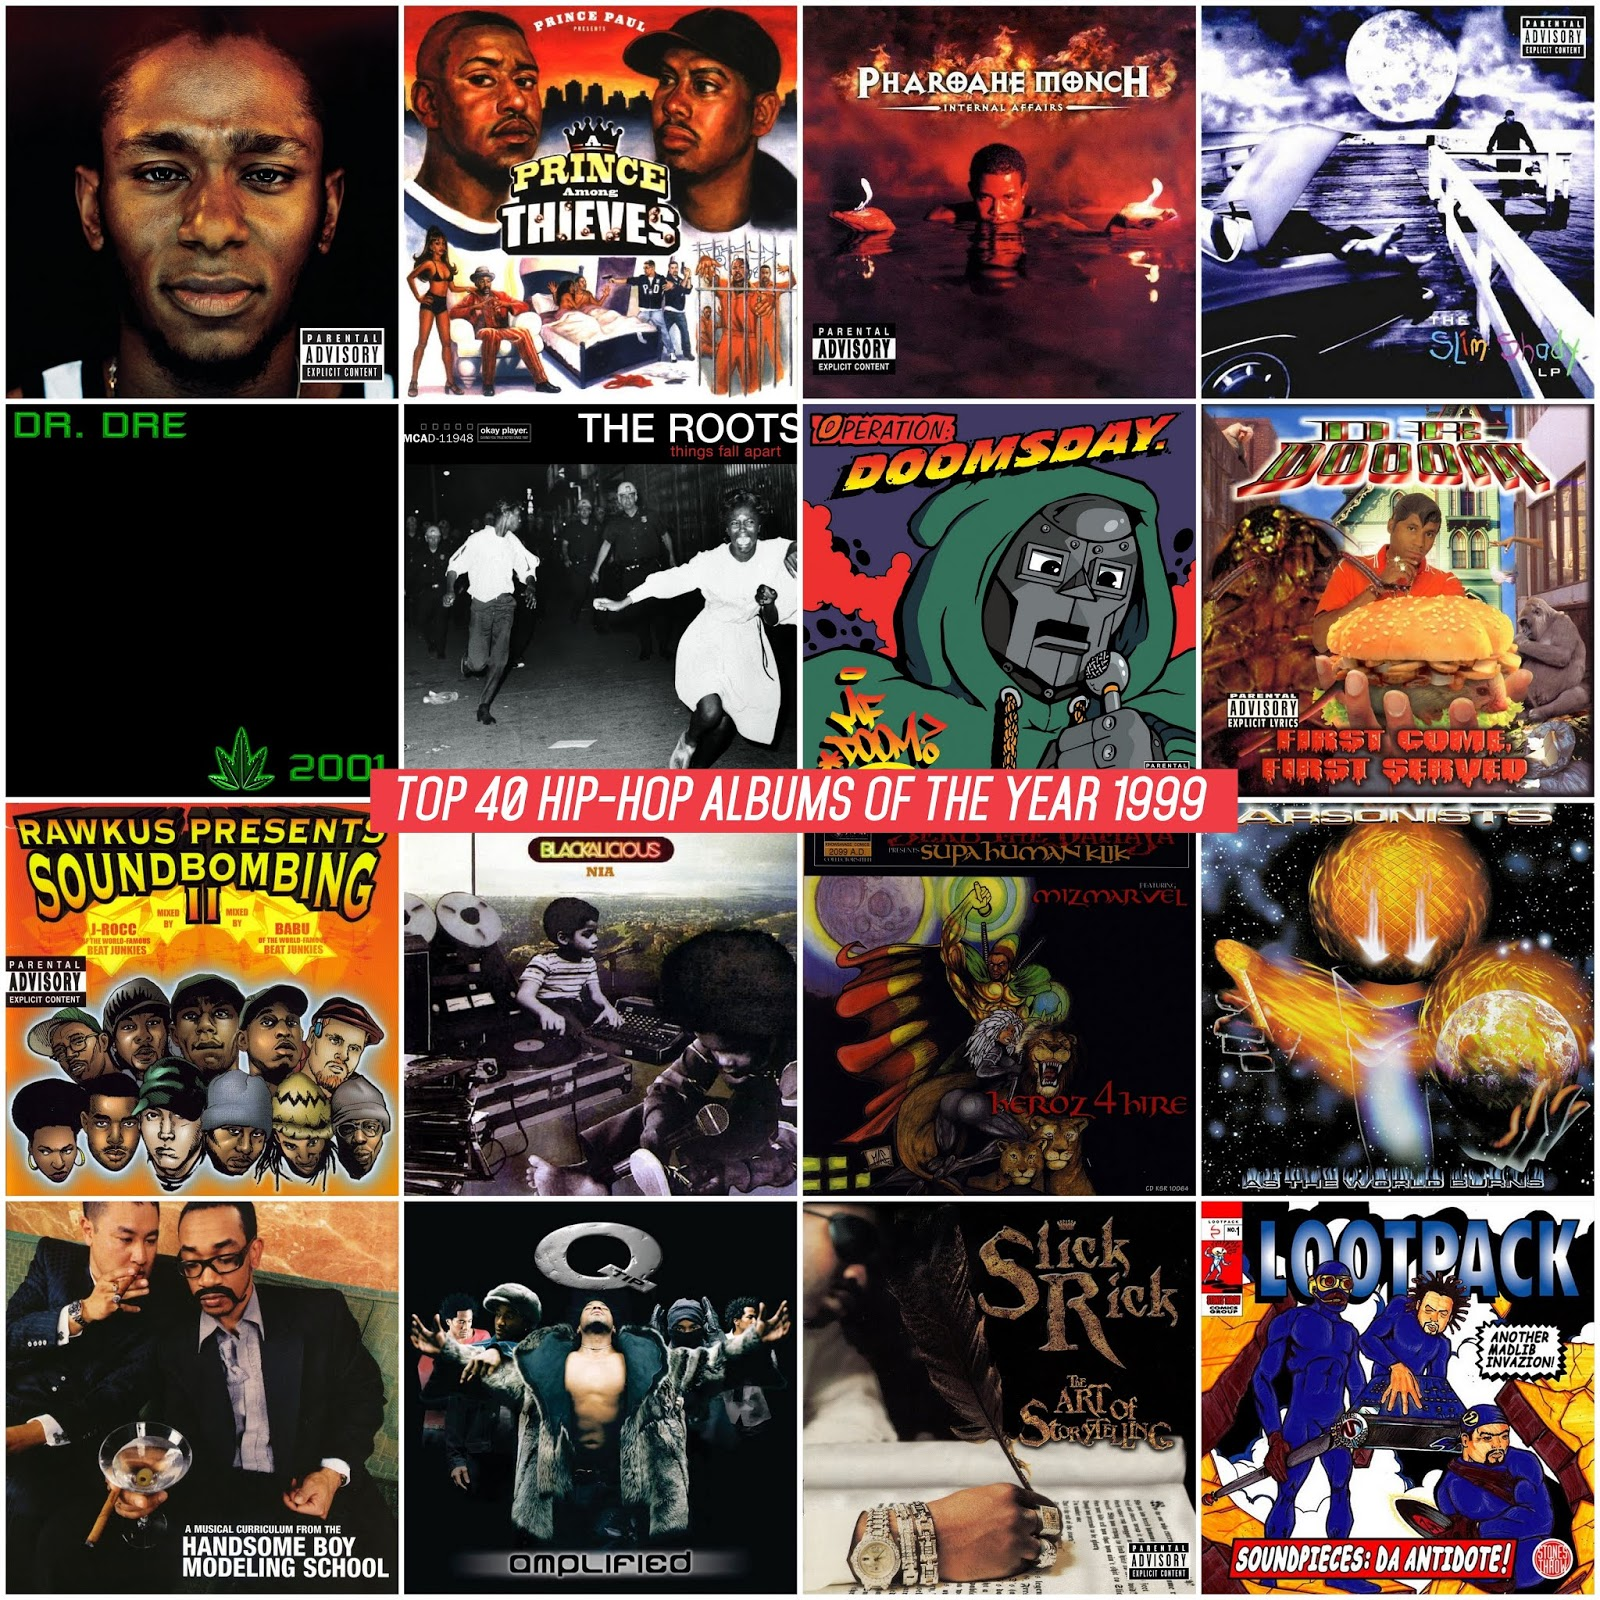 Top 40 Hip-Hop Albums of the Year 1999 | Mediafire / MEGA | 320 kbps